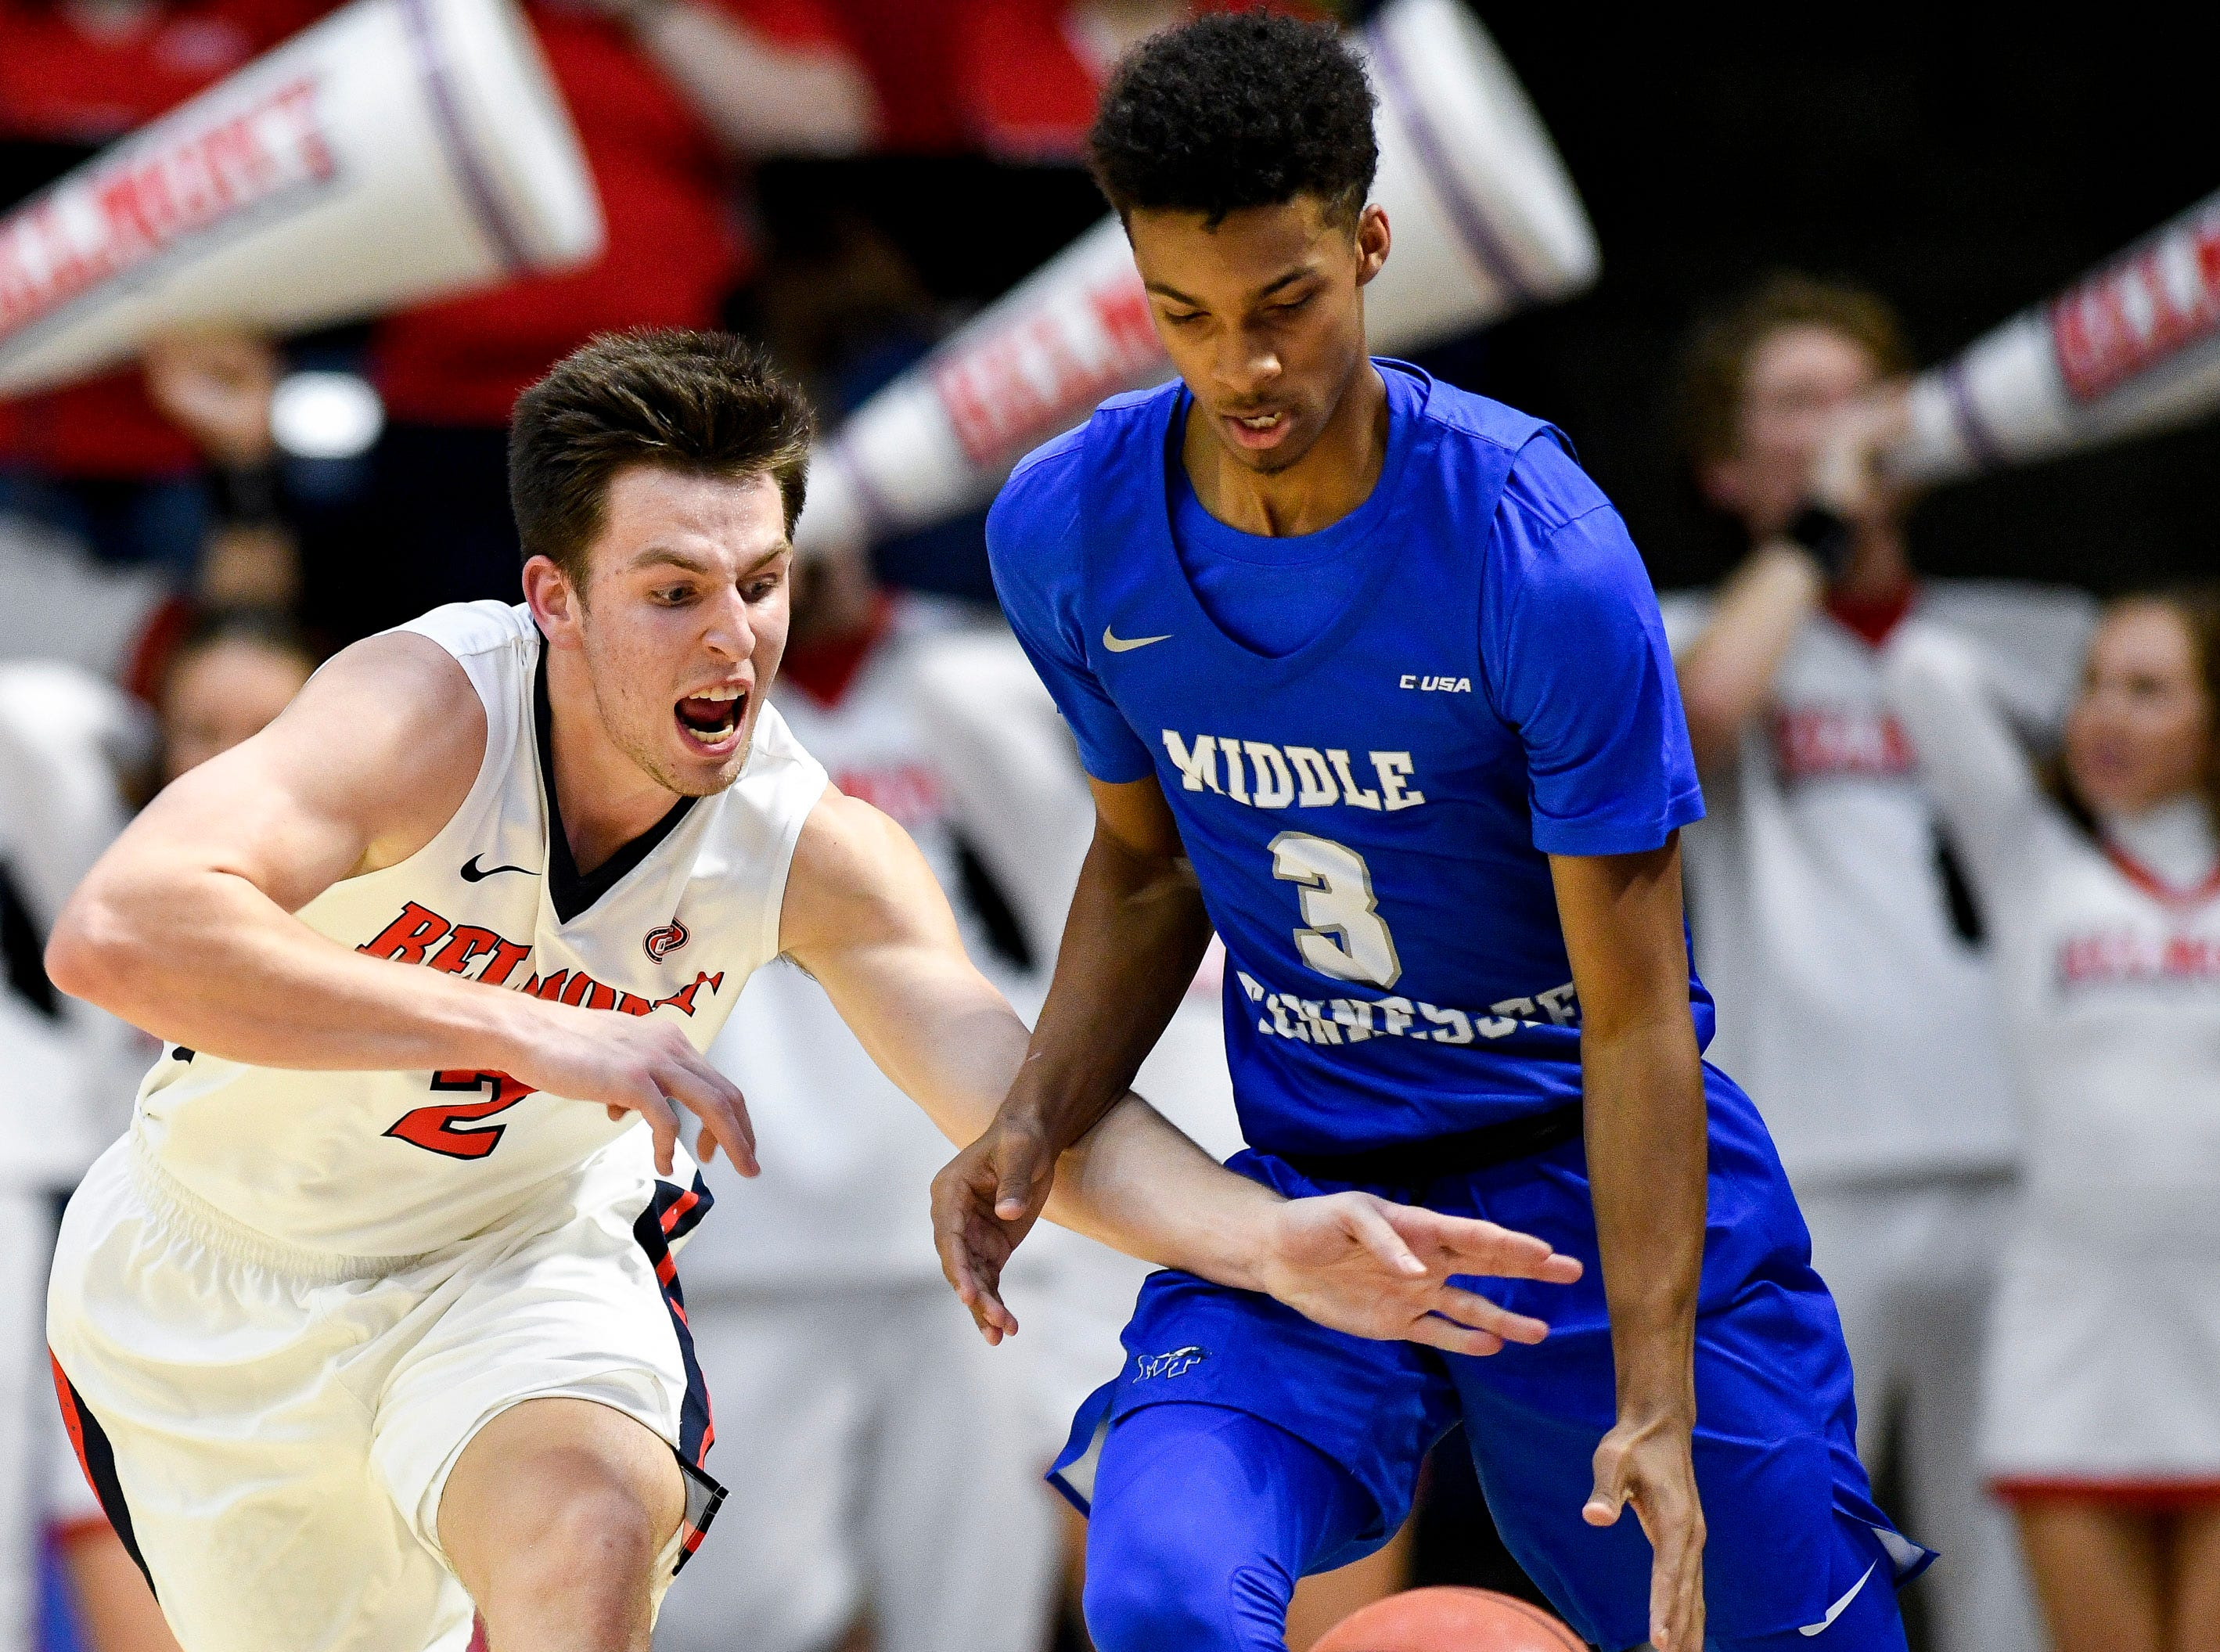 Belmont guard Grayson Murphy (2) fights for the ball with MTSU guard Donovan Sims (3) during the first half at the Curb Event Center Arena in Nashville, Tenn., Monday, Nov. 12, 2018.